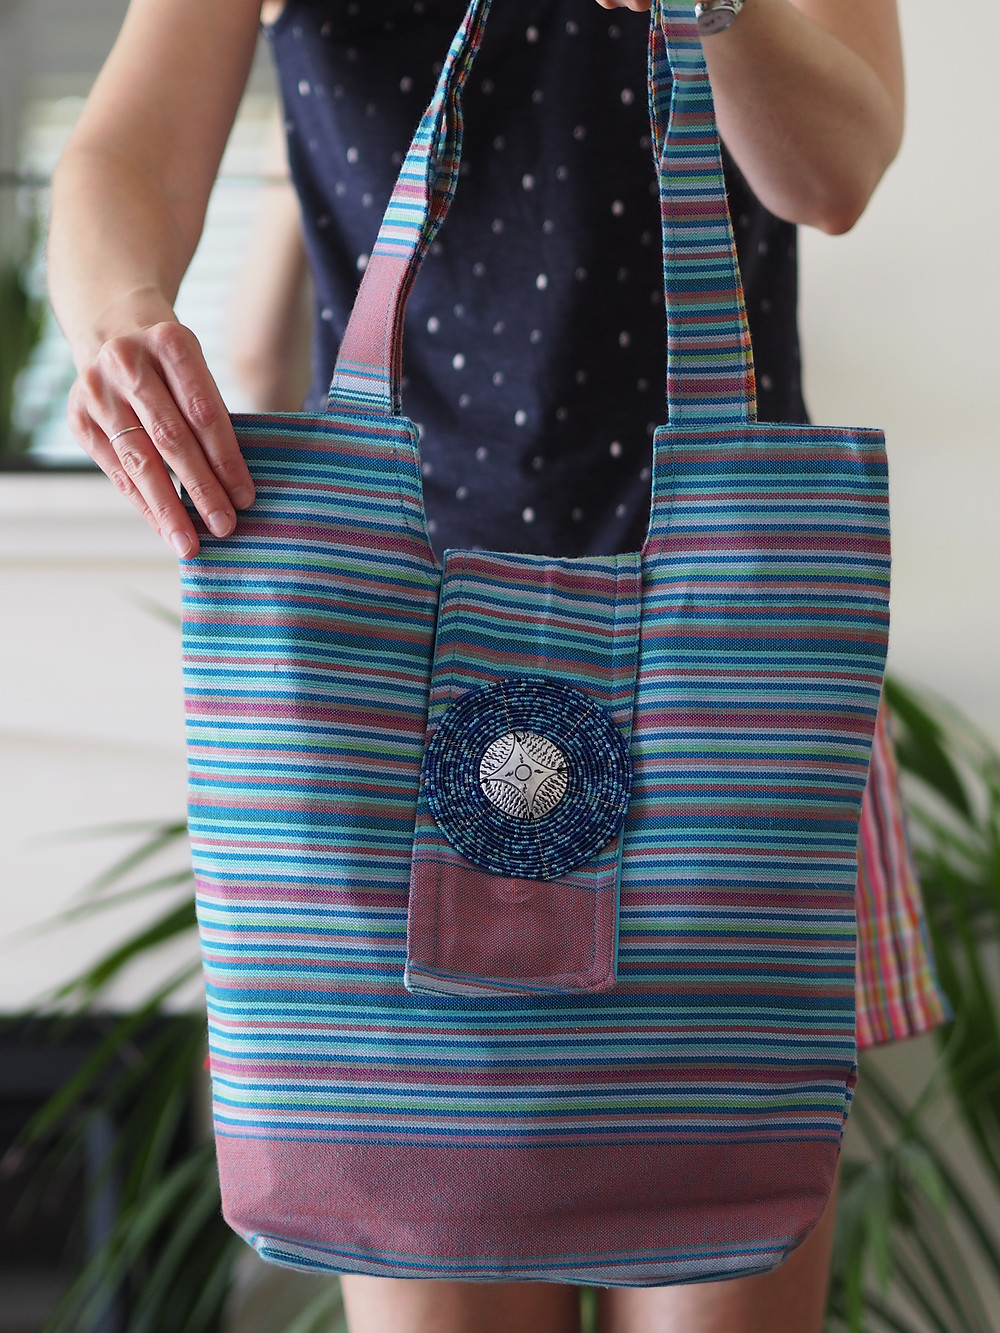 blue and rose bag for life cotton kikoy shopper. Available to buy at Wild Home Online on Etsy.